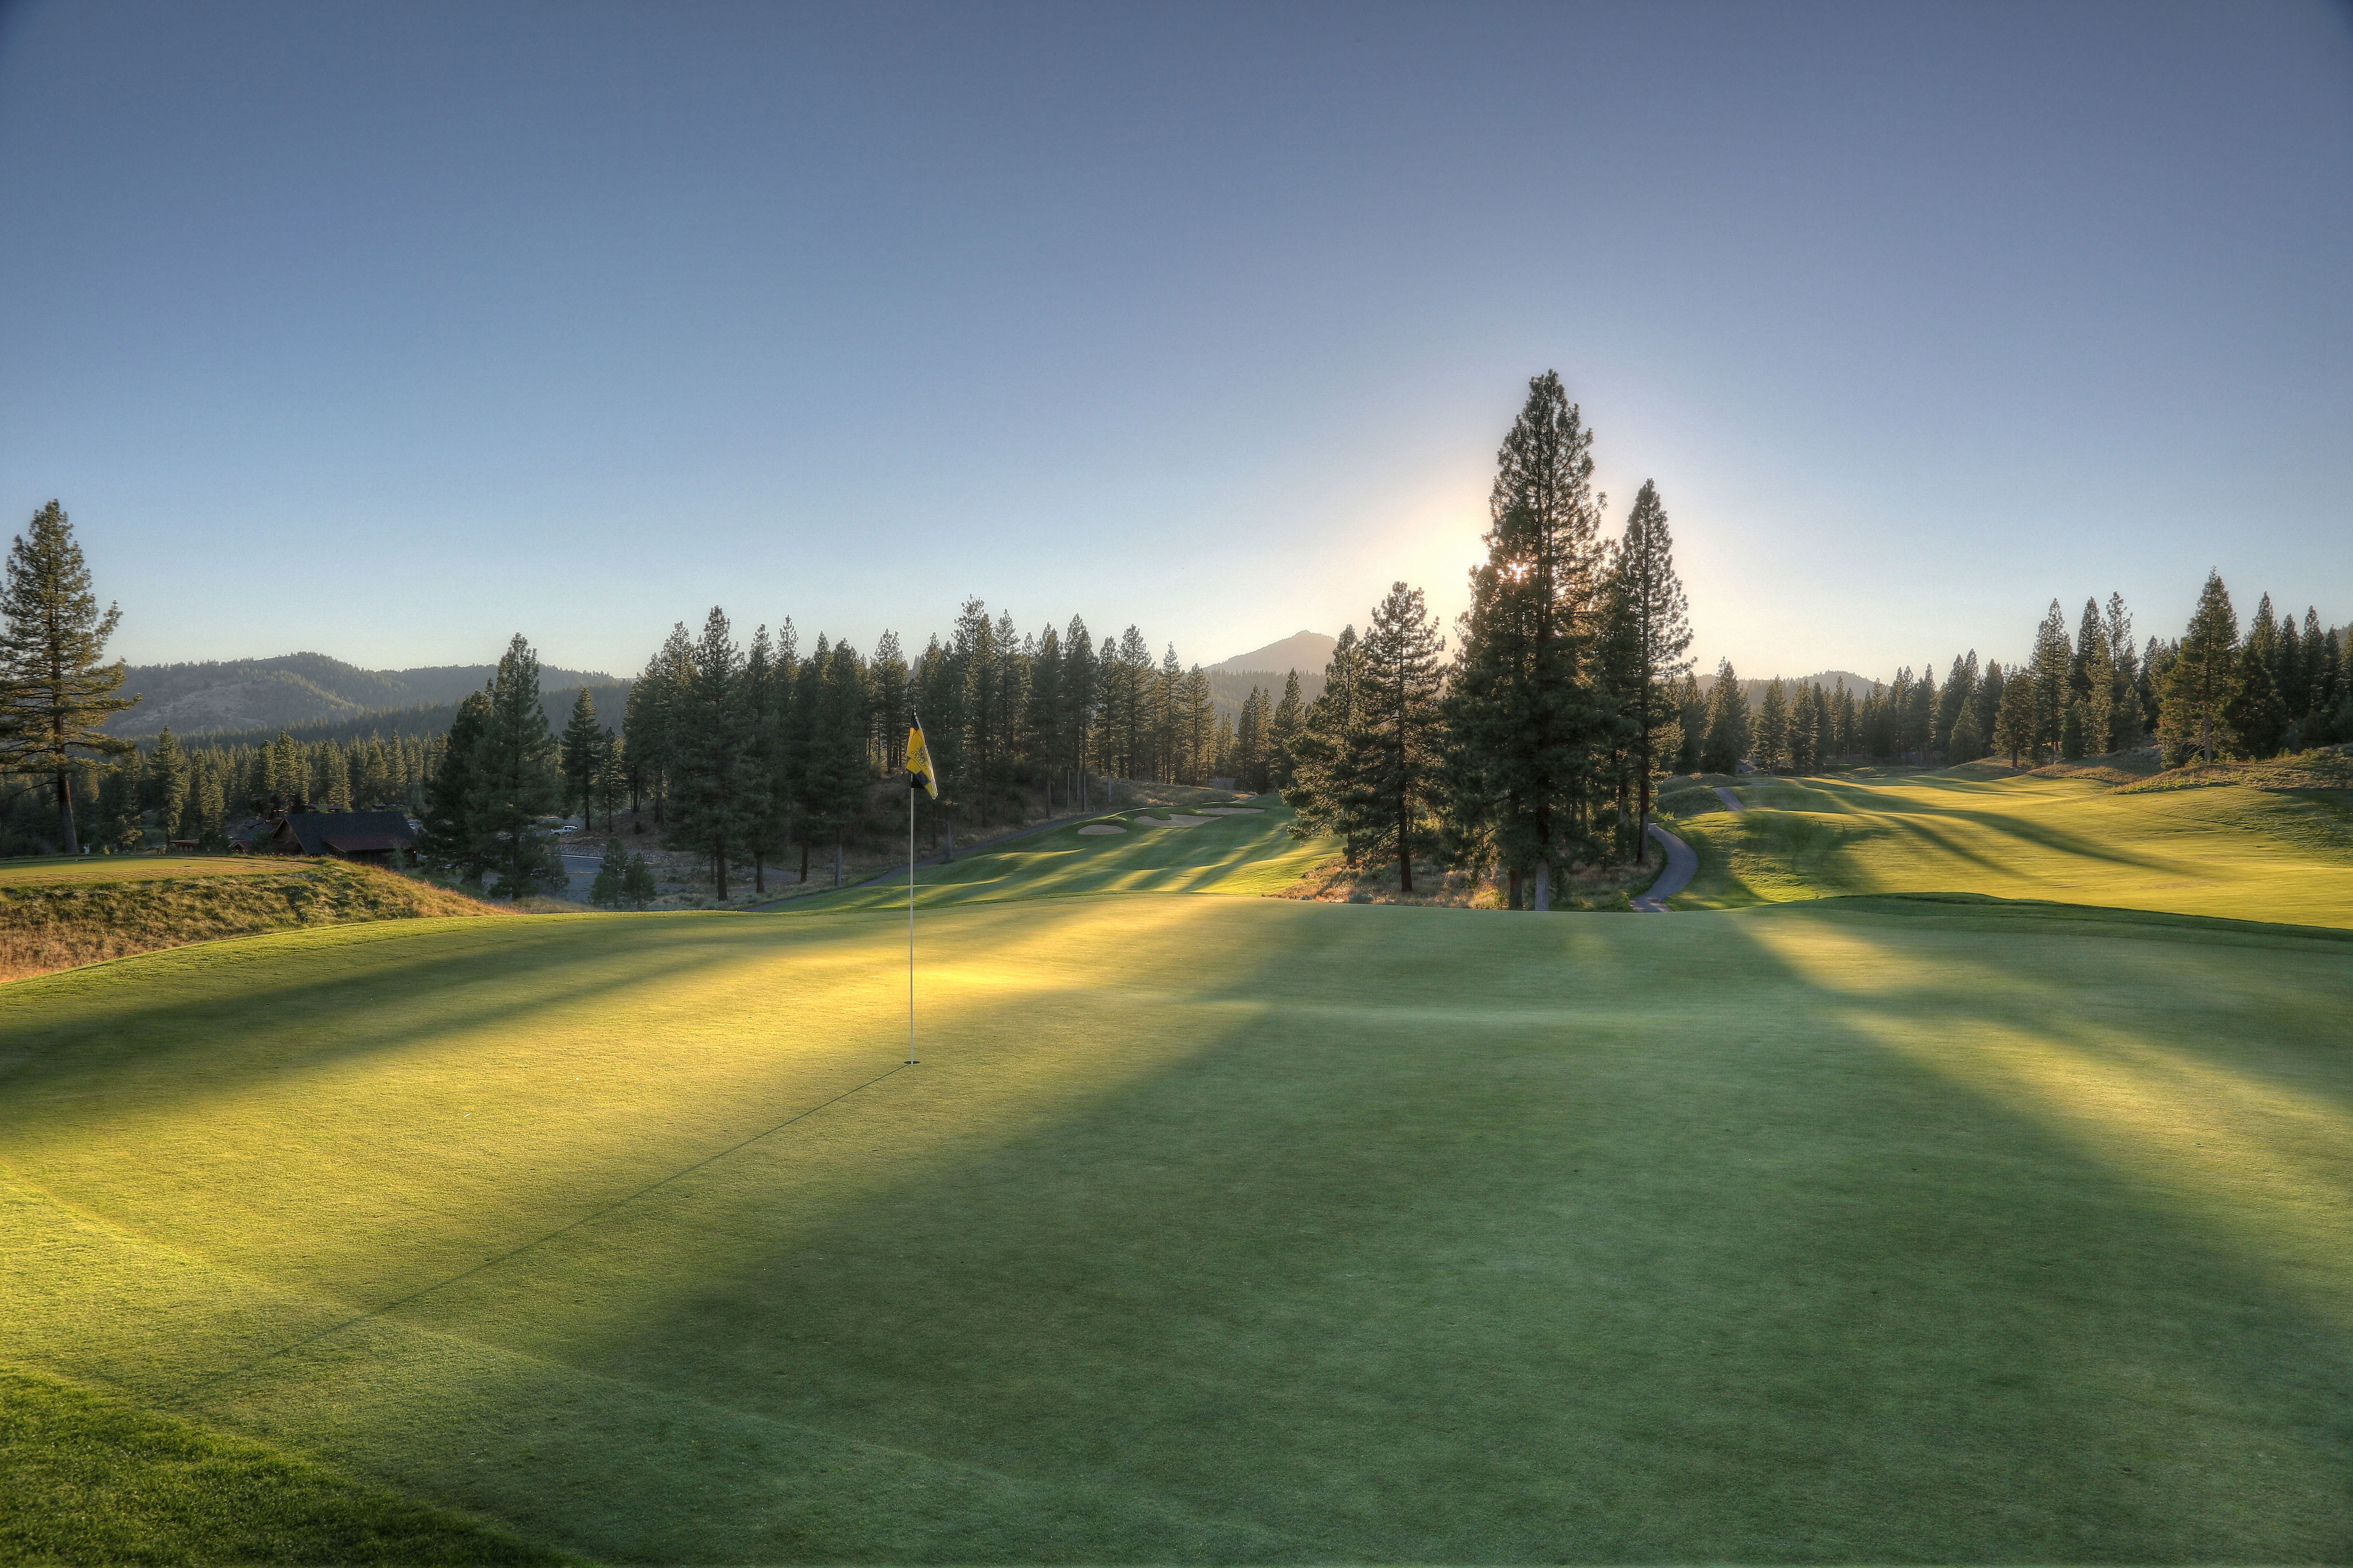 Overview of golf course named Grizzly Ranch Golf Club